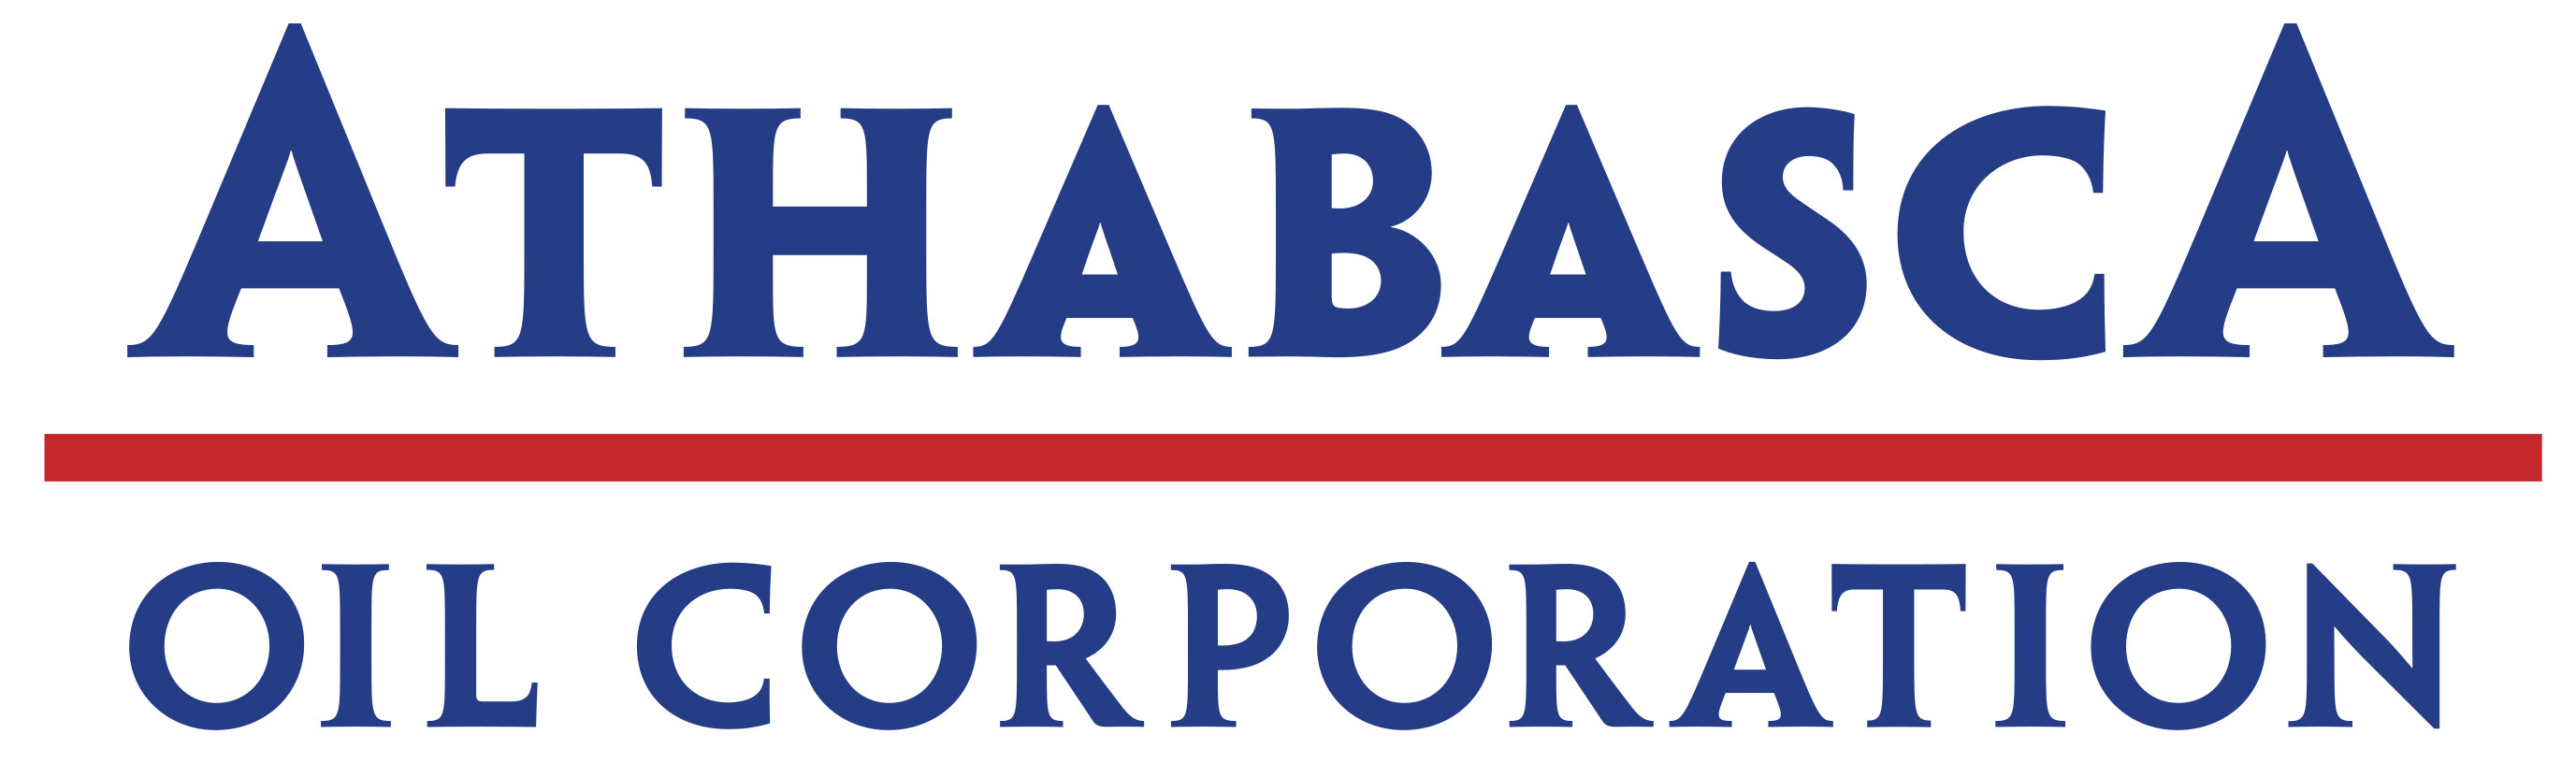 Athabasca Oil Corporation Provides 2021 Budget Guidance and Announces Bank Facility Renewal along with an Increase in Unsecured Credit Facility Capacity